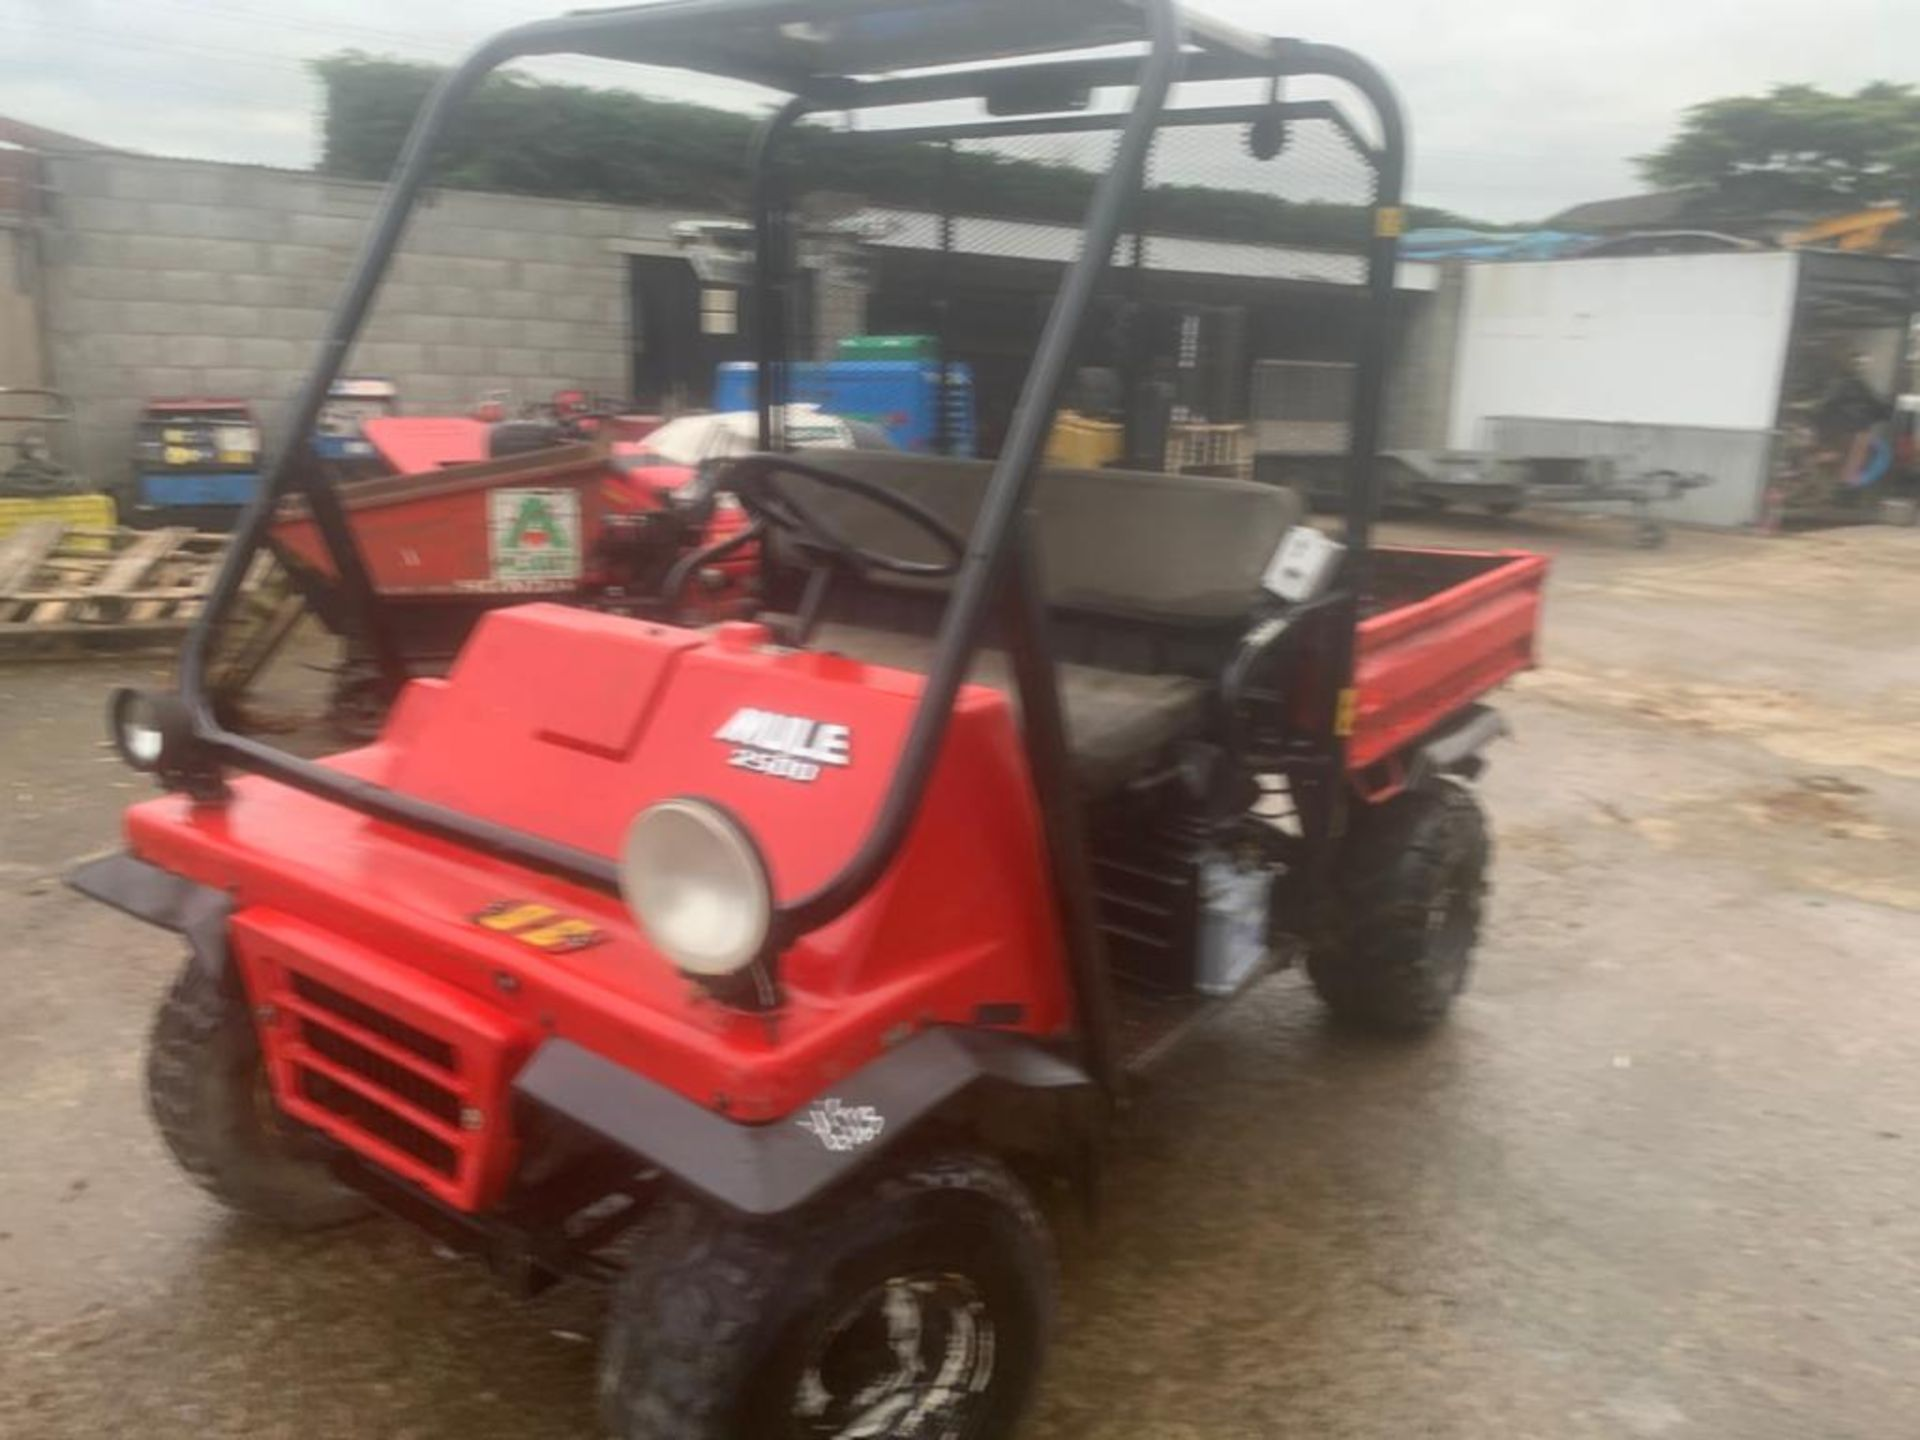 KAWASAKI PETROL MULE, DELIVERY ANYWHERE IN THE UK £300, STARTS, RUNS AND DRIVES *PLUS VAT* - Image 2 of 7